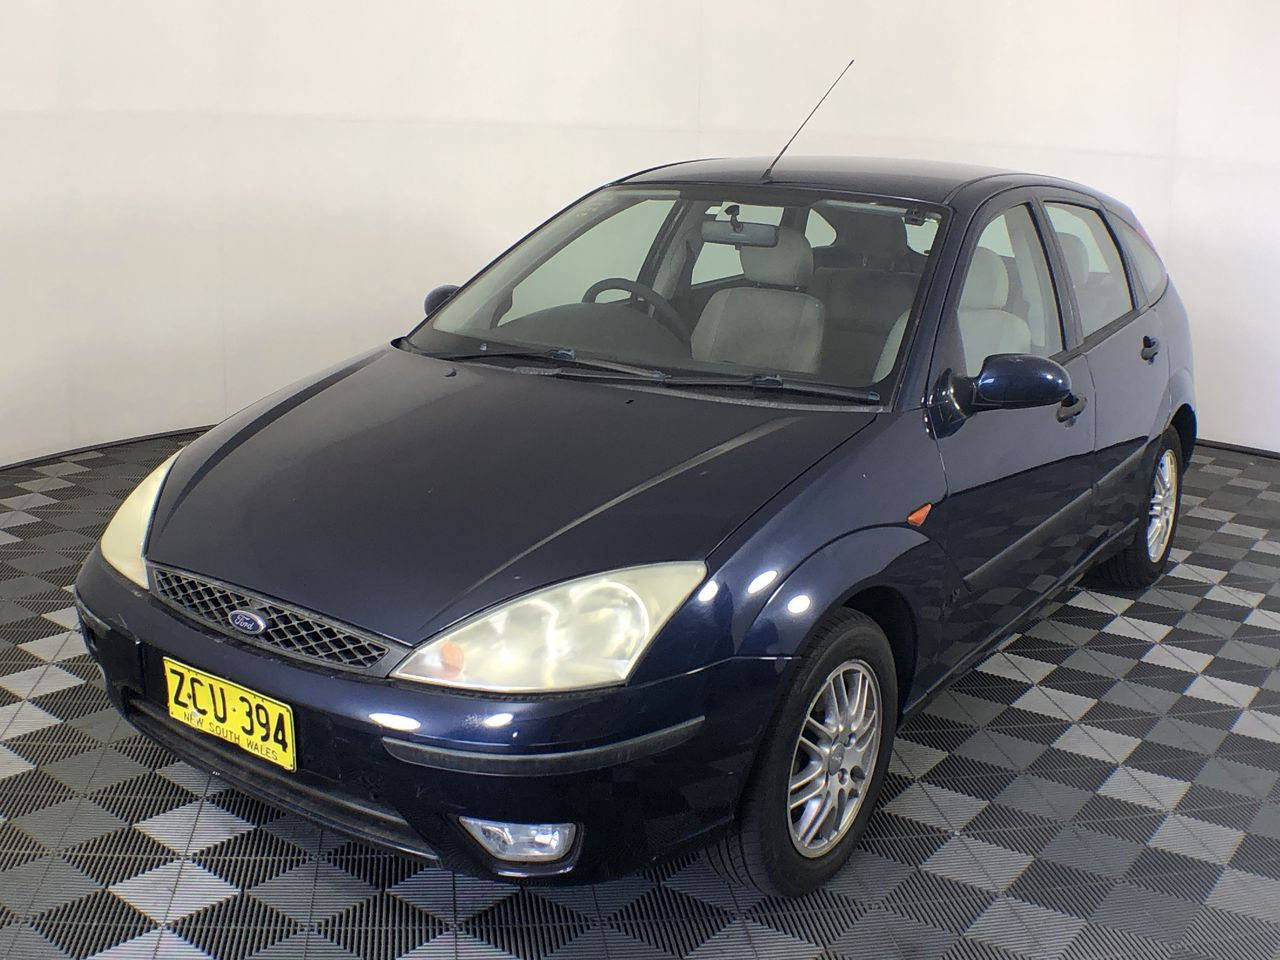 2003 Ford Focus LX LR Automatic Hatchback